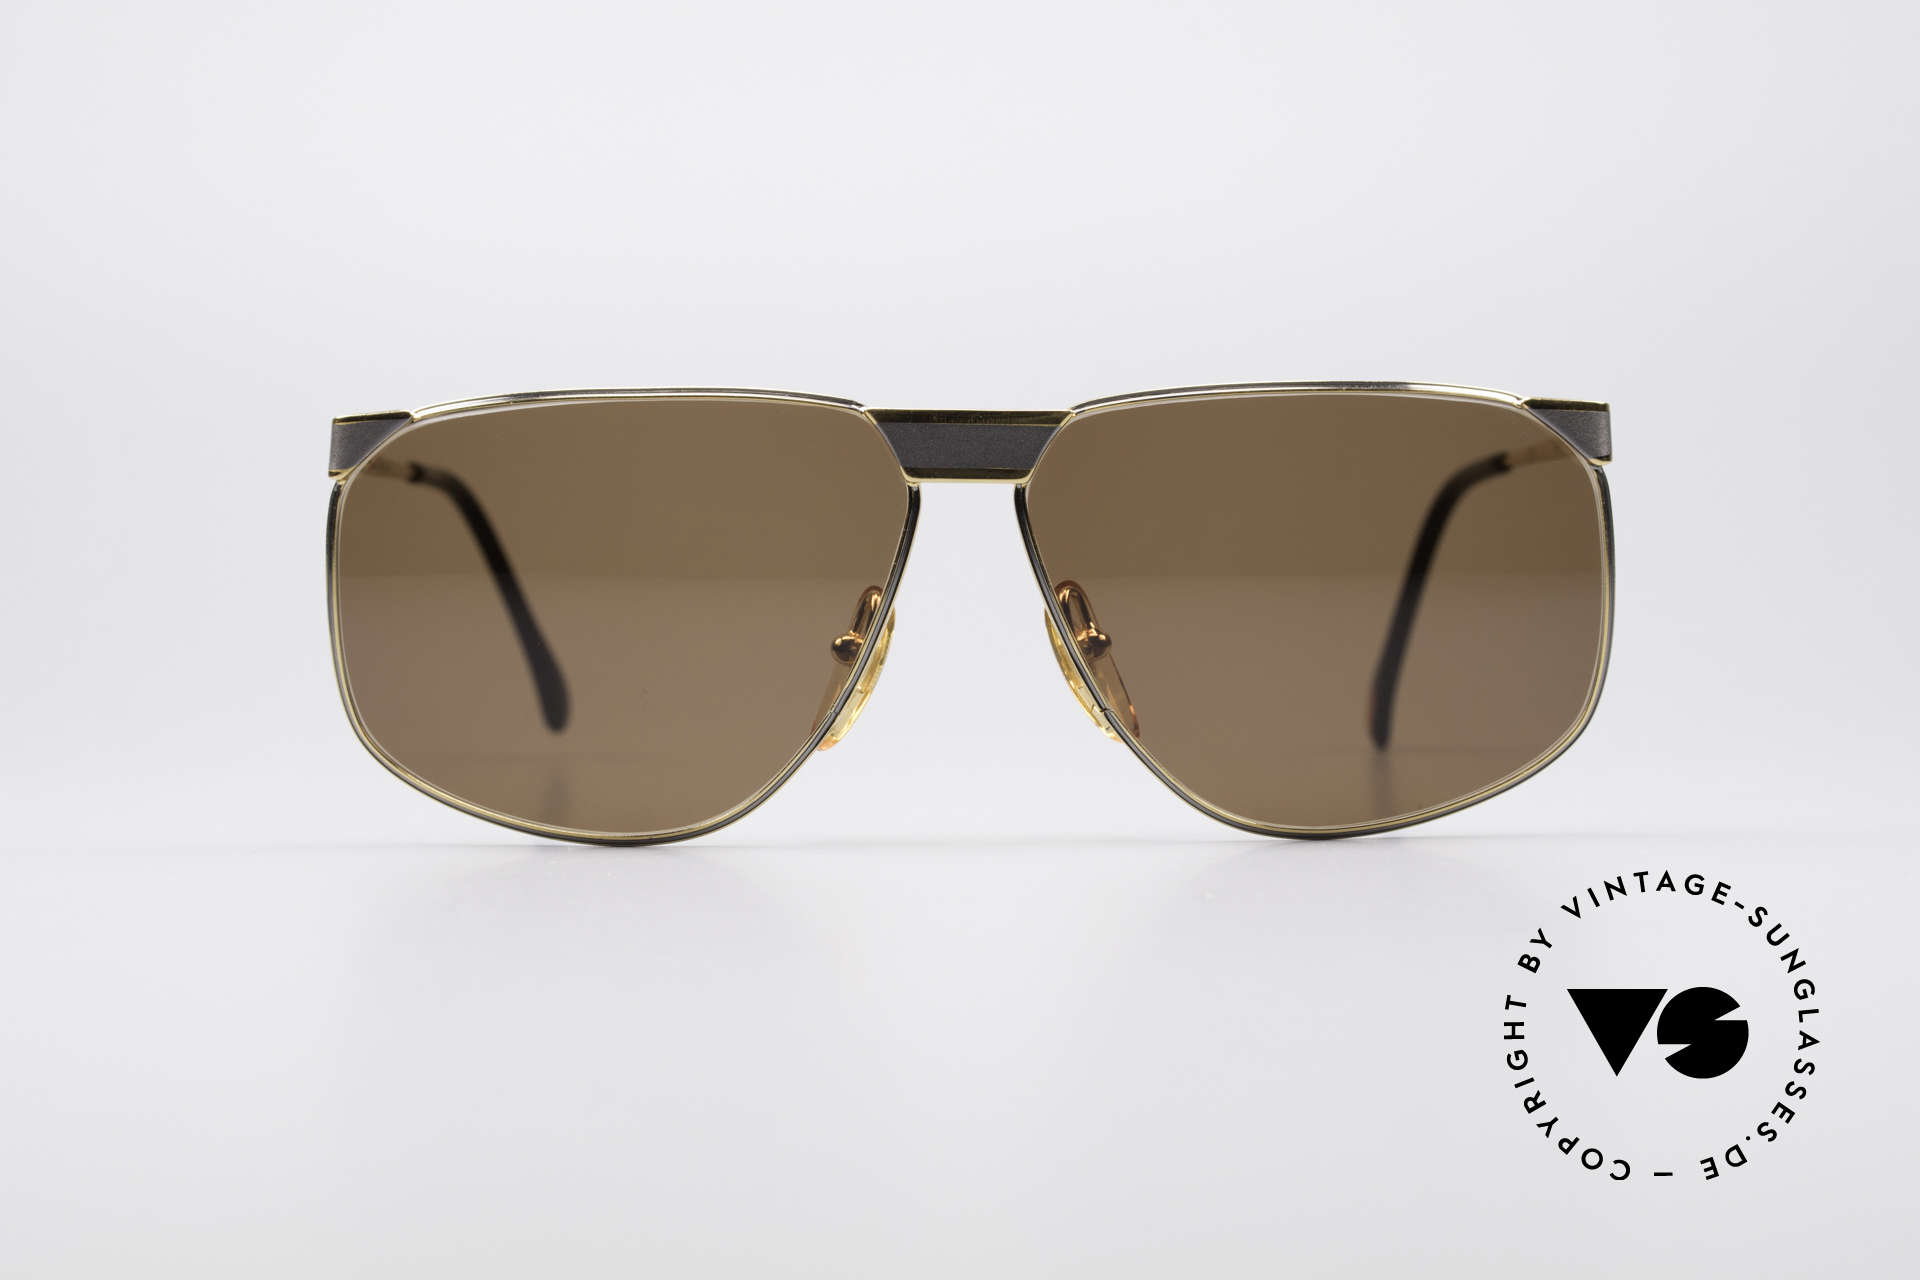 Casanova NM7 24KT Gold Plated Shades, very stylish unisex model - simple but distinctive, Made for Men and Women